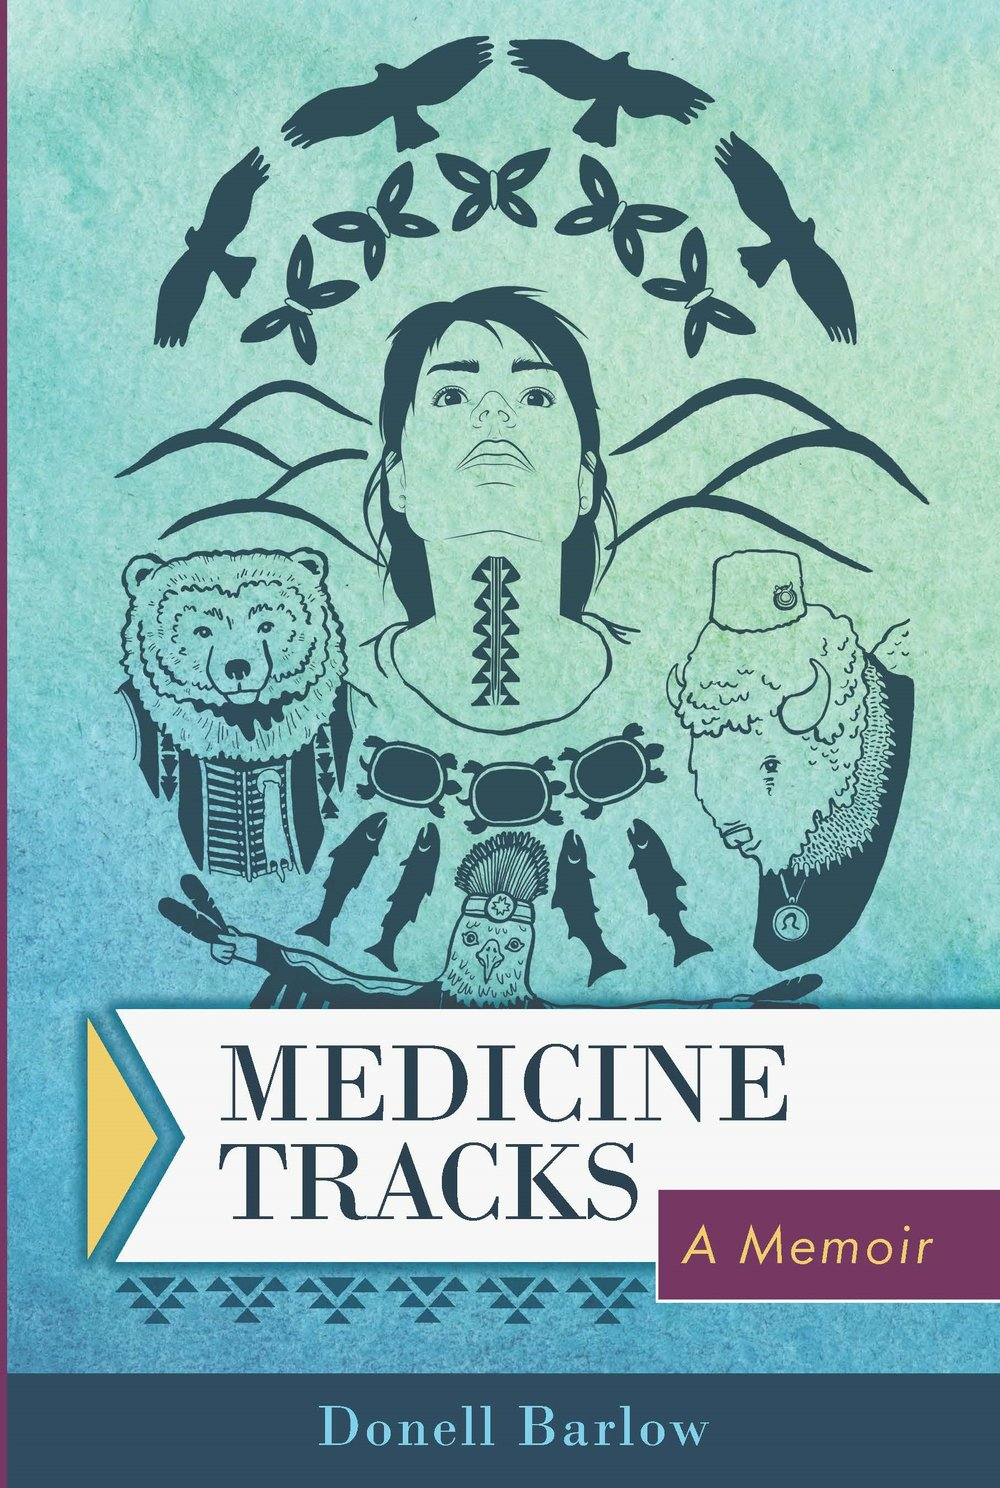 - Medicine Tracks is one woman's journey through loss and change, with the people, animals, and dreams that are her medicine—her sources of guidance and healing—along the way.Donell Barlow's story begins with the unexpected dissolution of her marriage of thirteen years. This is only the beginning of changes to come, and she seizes what can guide her and holds on tight.Raised by her single father, Donell has always shared a special bond with him. Even as his health declines, she continues to be guided by his teachings. Venturing into the tricky world of dating after divorce, Donell seeks and finds love, sex, and connection, but must first relearn the importance of trusting her gut. The journey of following her medicine tracks leads Donell back to her Native American heritage. From mentoring Native youth to supporting the protection of the planet through her activism, Donell forges a new life while holding on to the most important parts of her past.Medicine Tracks is a story of becoming sensitive to the wisdom of the Universe around you, being present in the moment, and having faith to follow your own guides toward a new path.